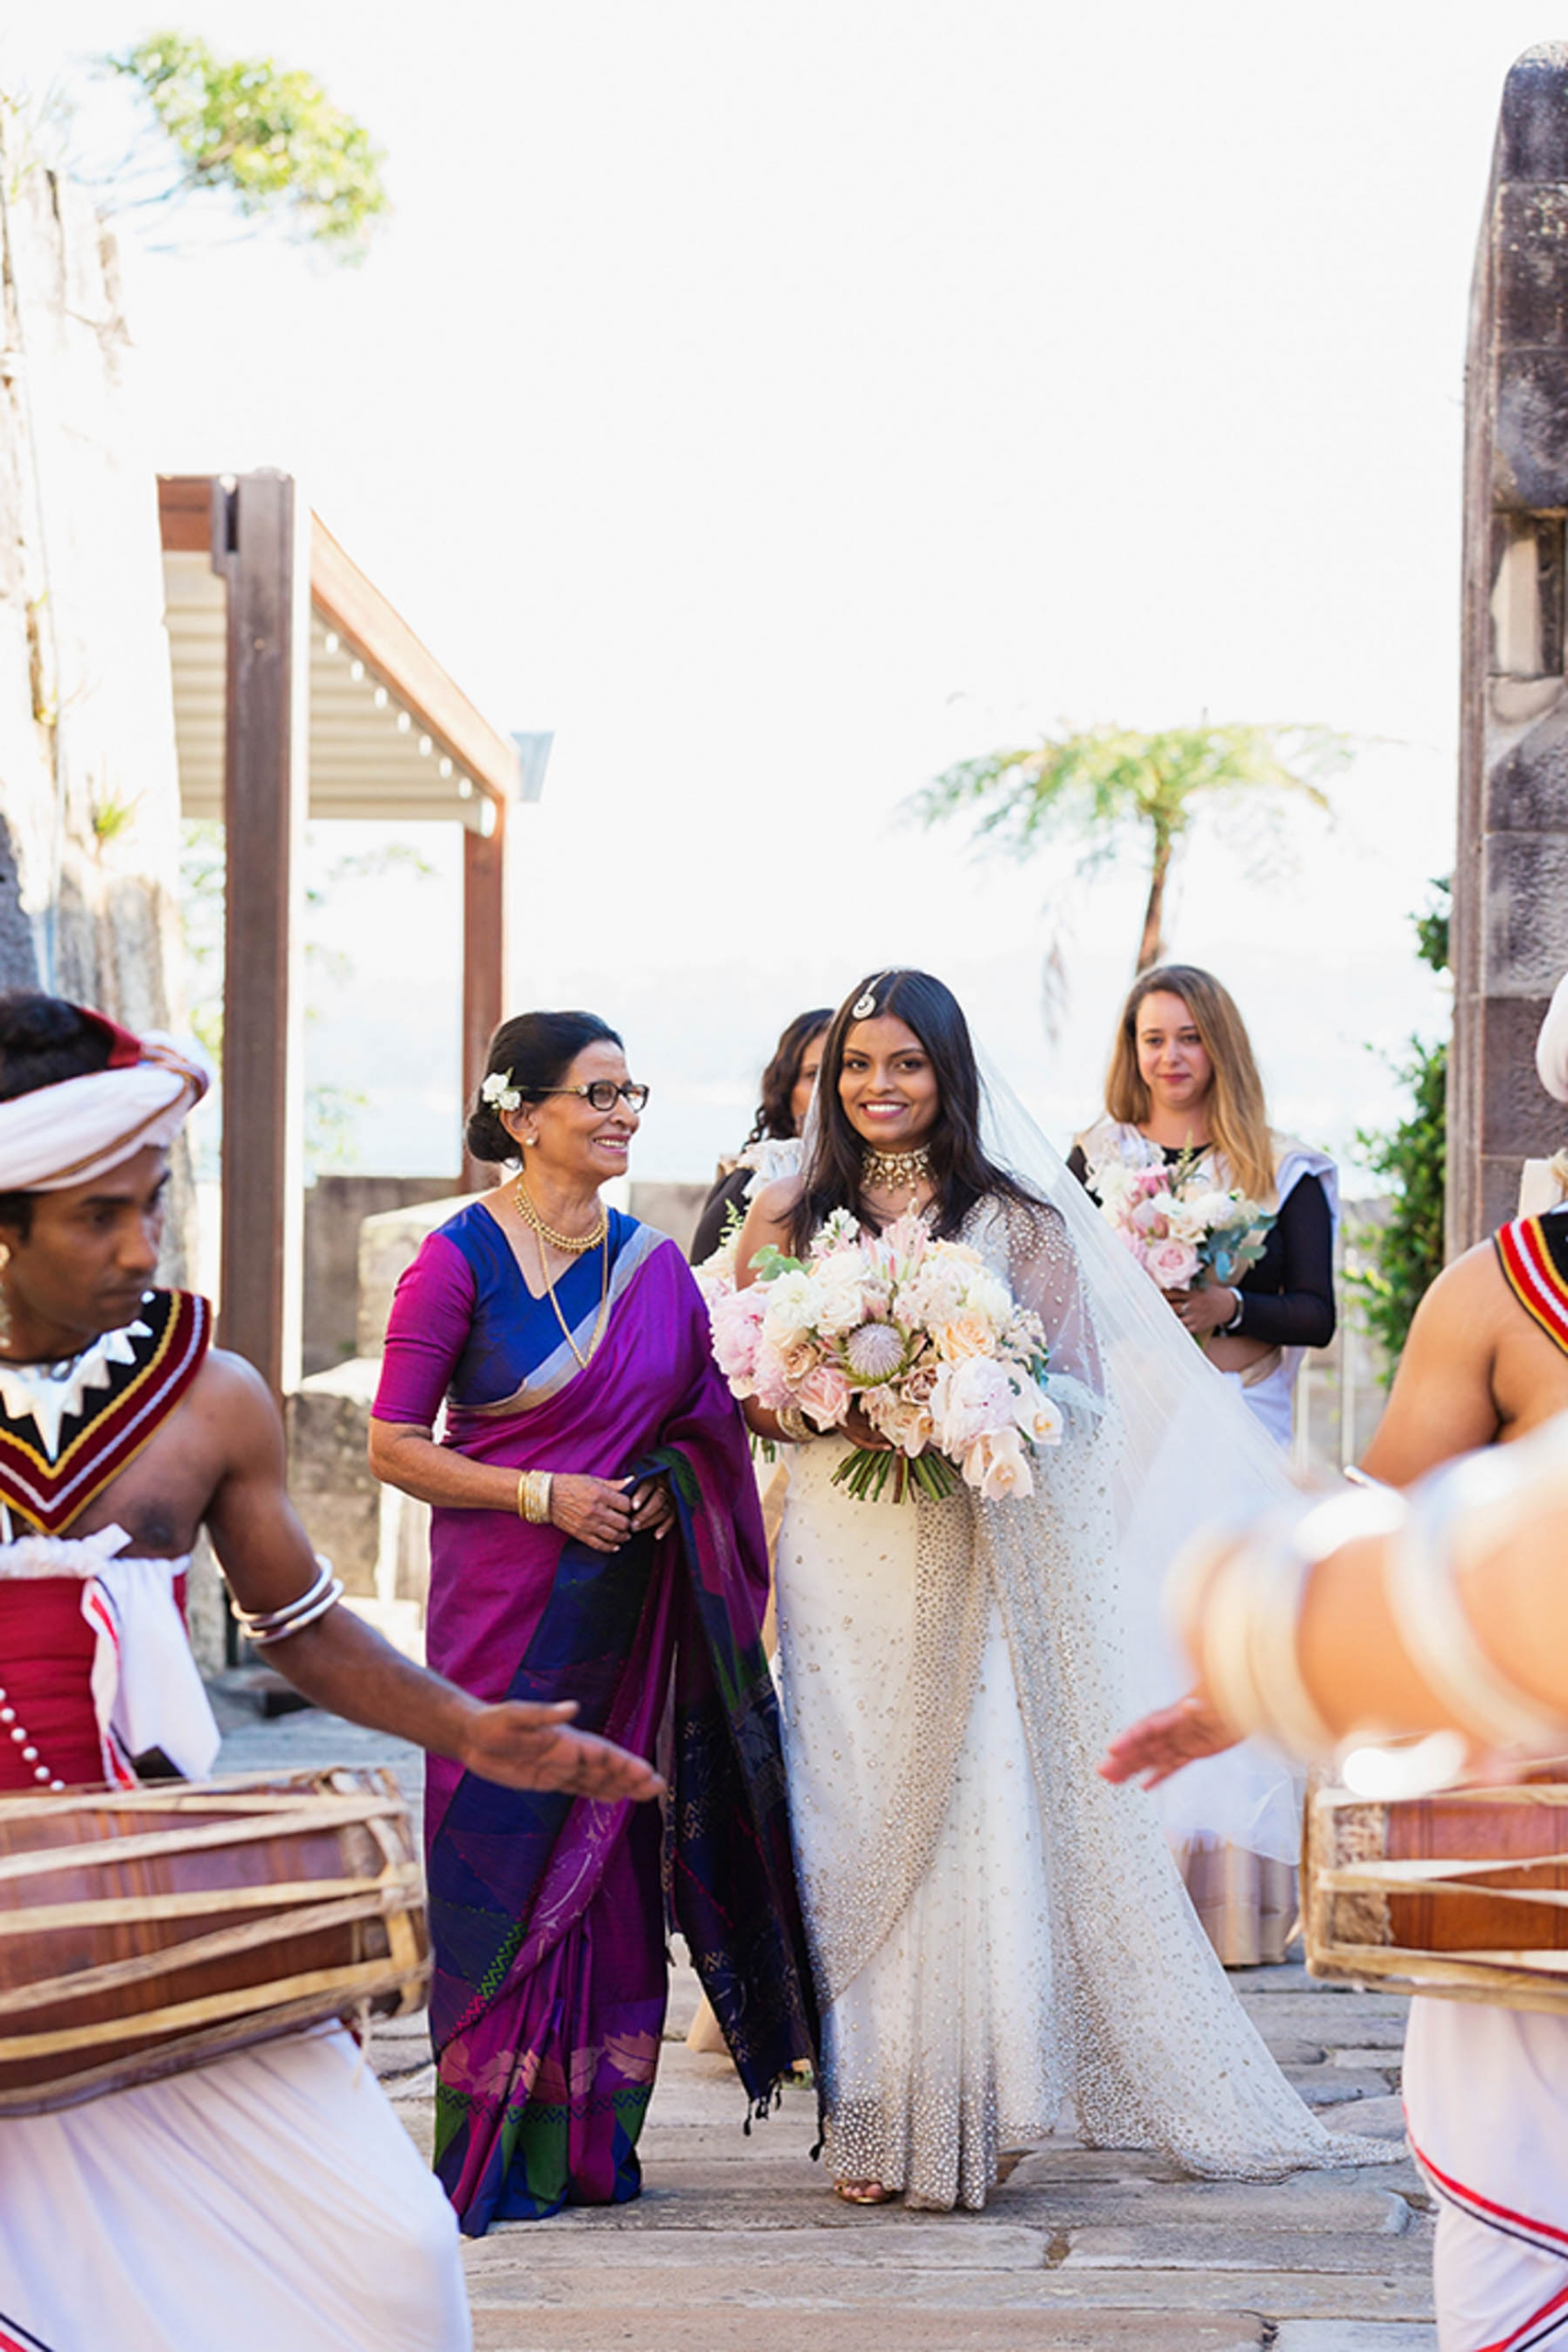 Sri Lankan bride, Erandi walking down the aisle before her Poruwa wedding ceremony in Sydney